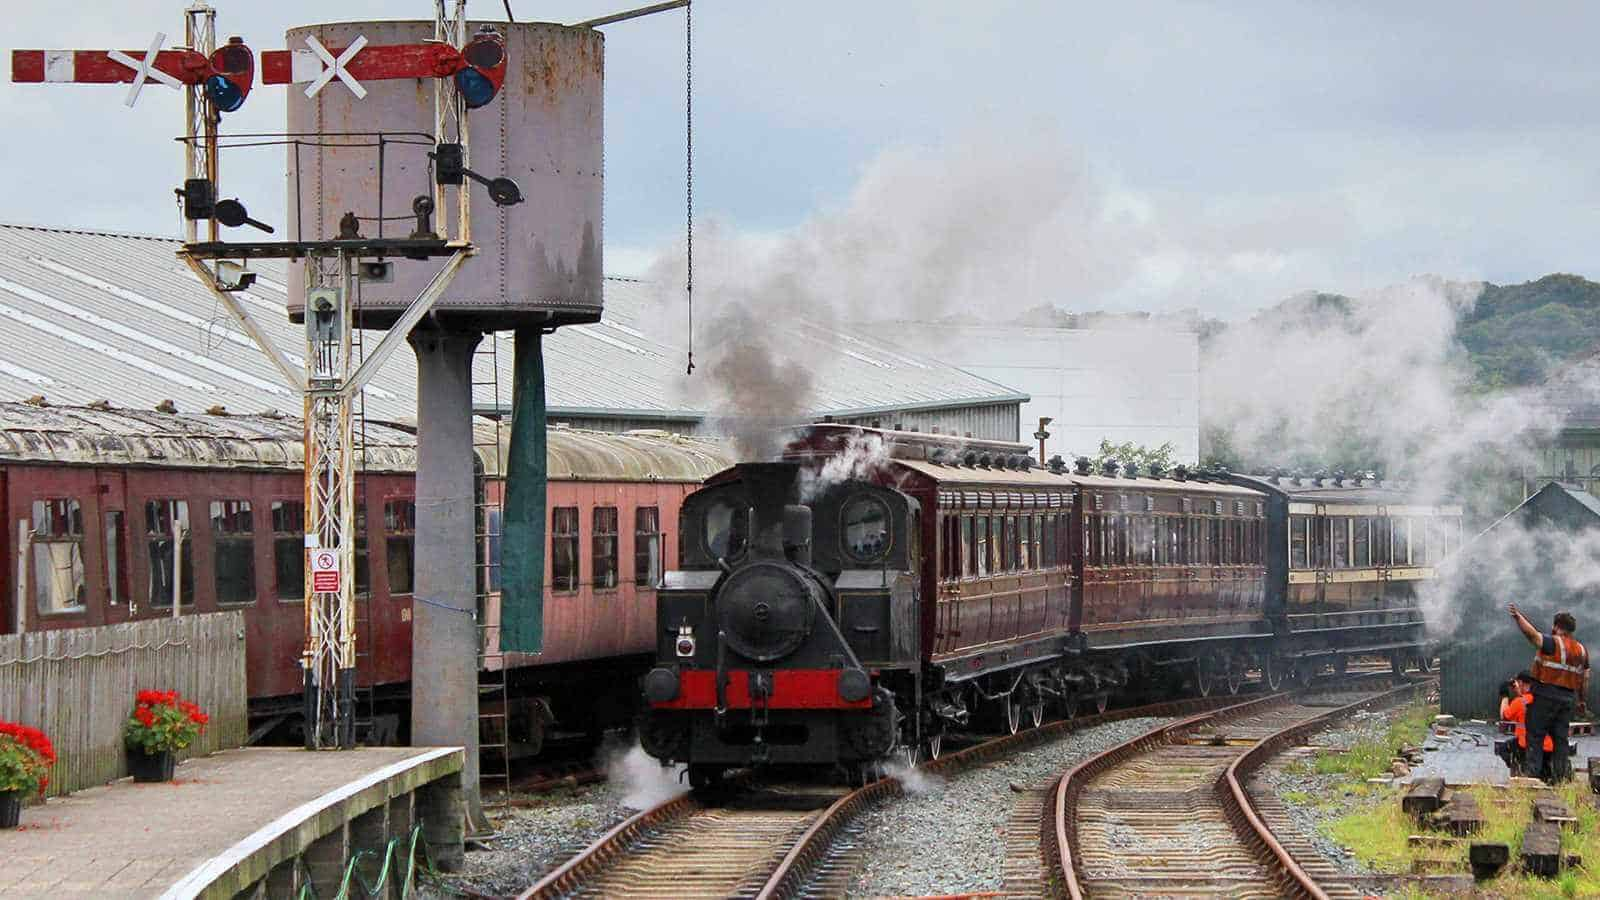 Our steam train pulls into the station in Downpatrick